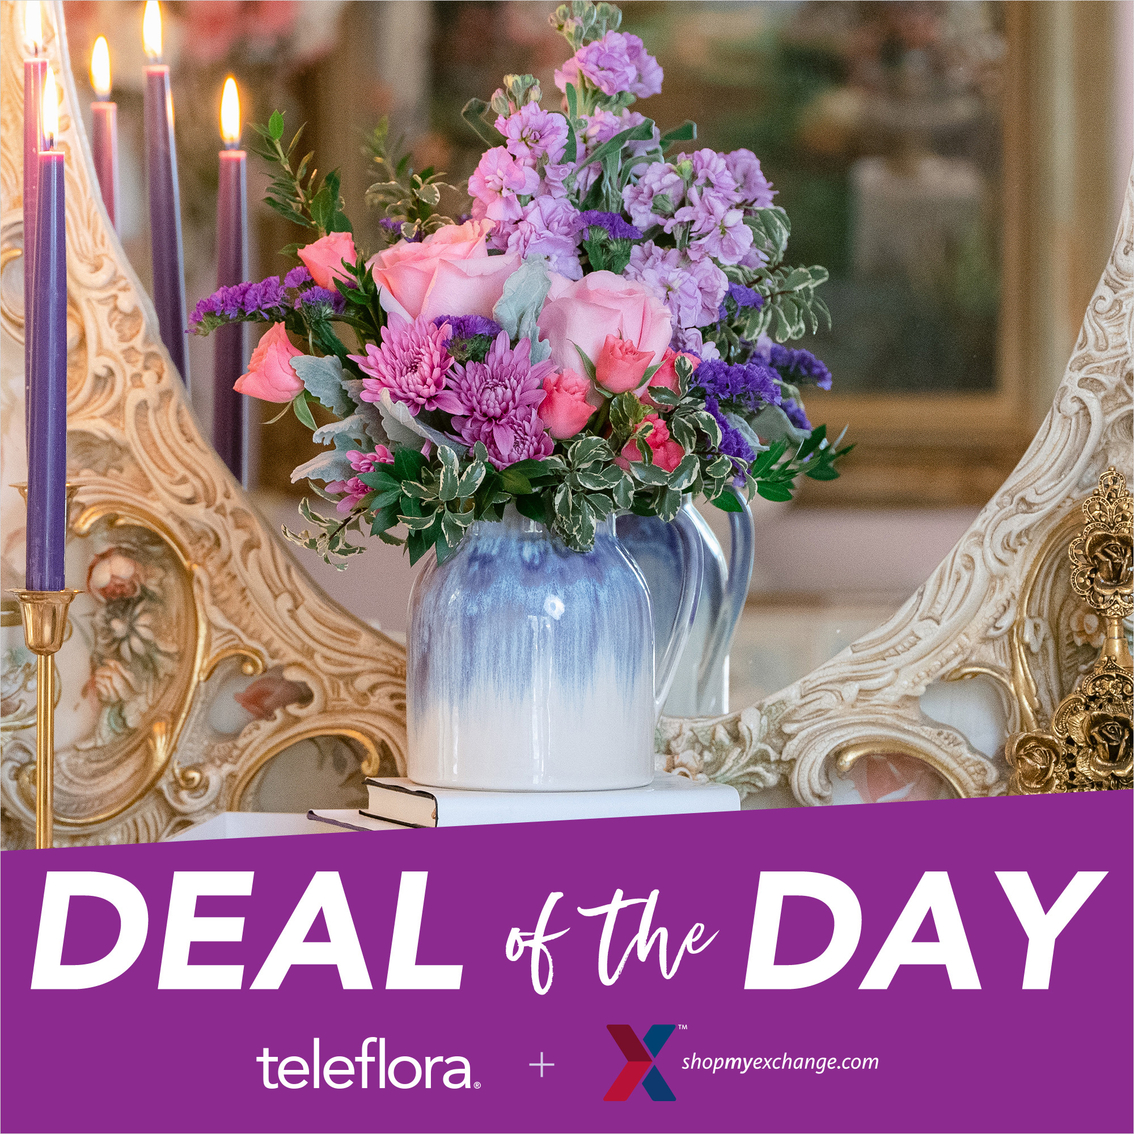 Teleflora Flowers | Specialty Stores | Gifts & Food | Shop The Exchange